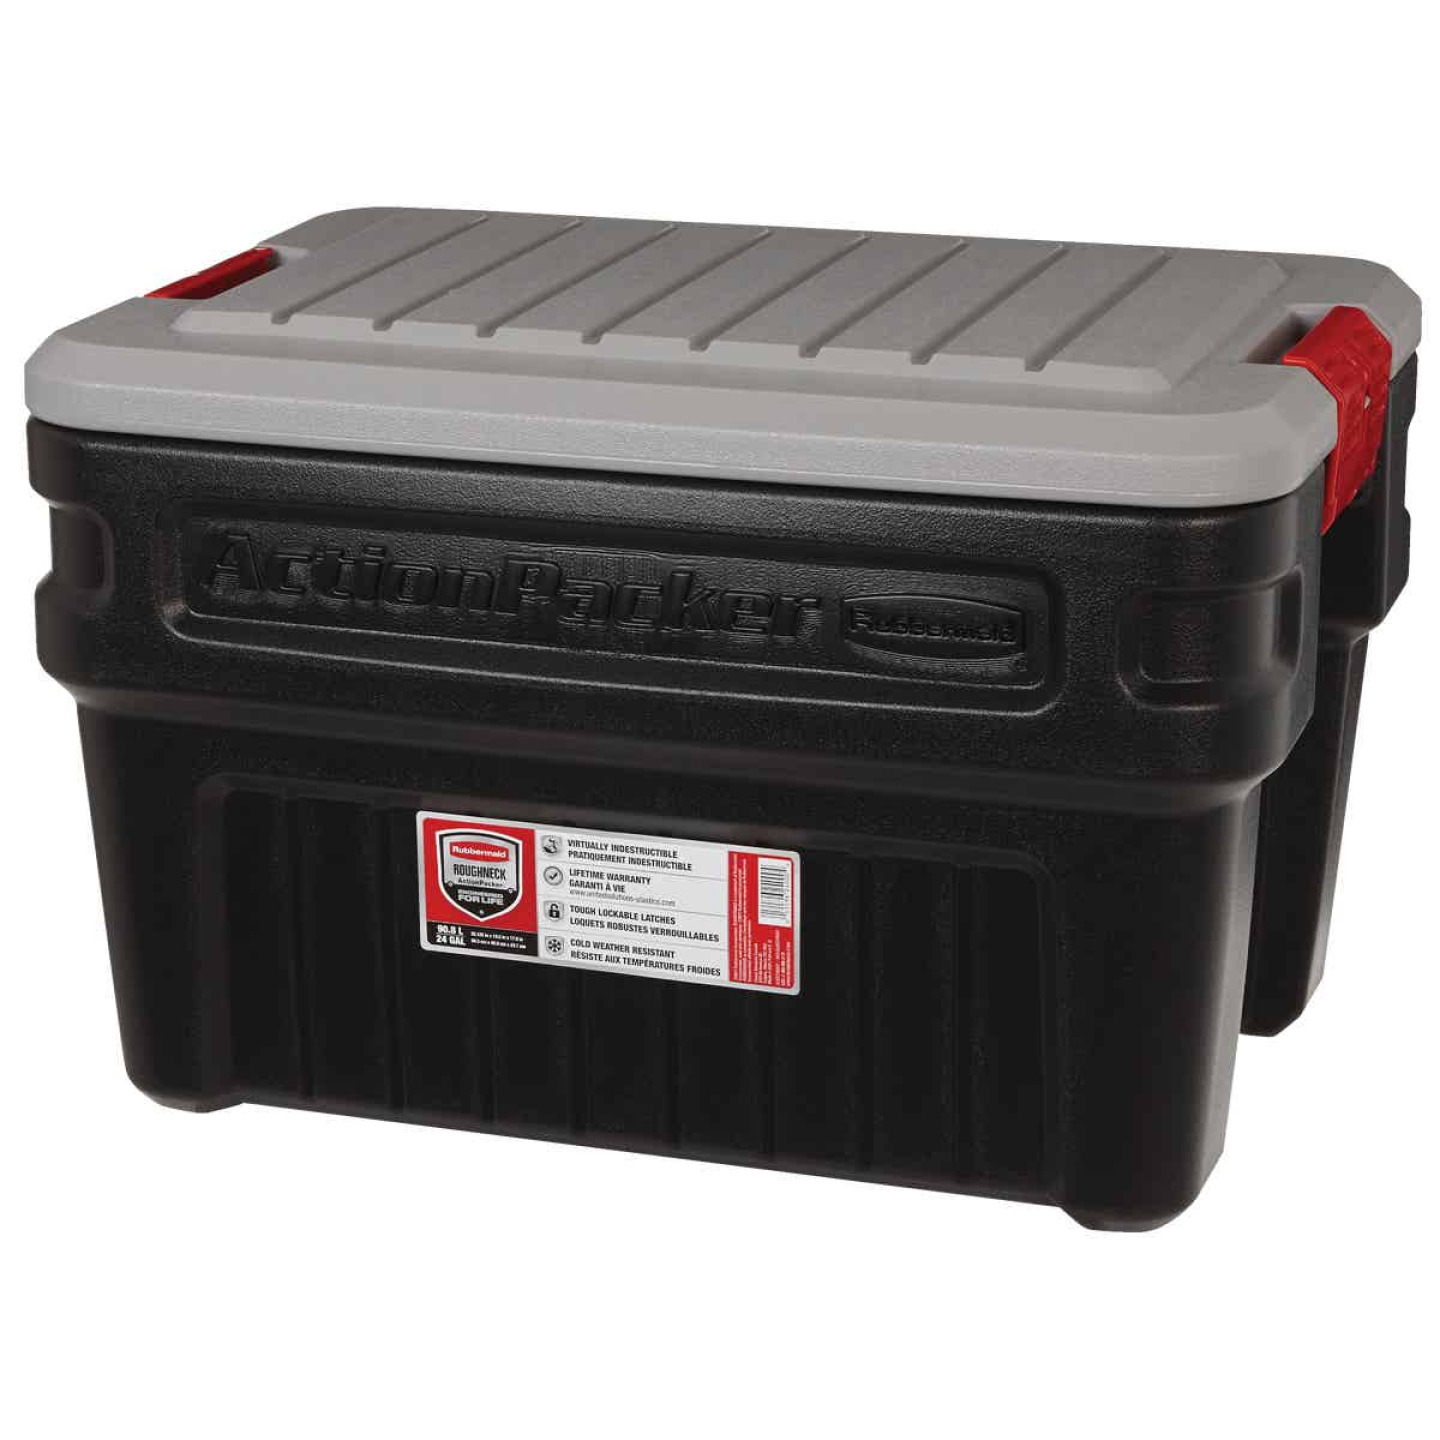 Rubbermaid ActionPacker 24 Gal. Black Storage Tote Image 2